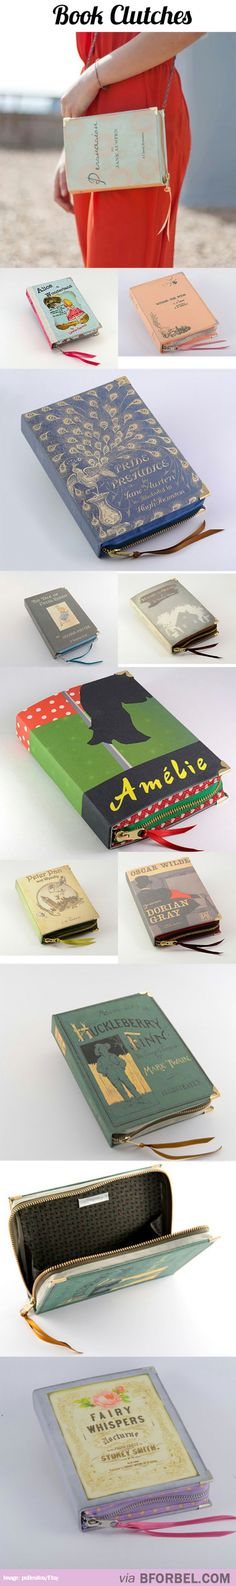 Clutches Made From Book Covers...cool way to re-purpose weeded books! <3 @Lindsey Grande Grande Grande Grande Borgna